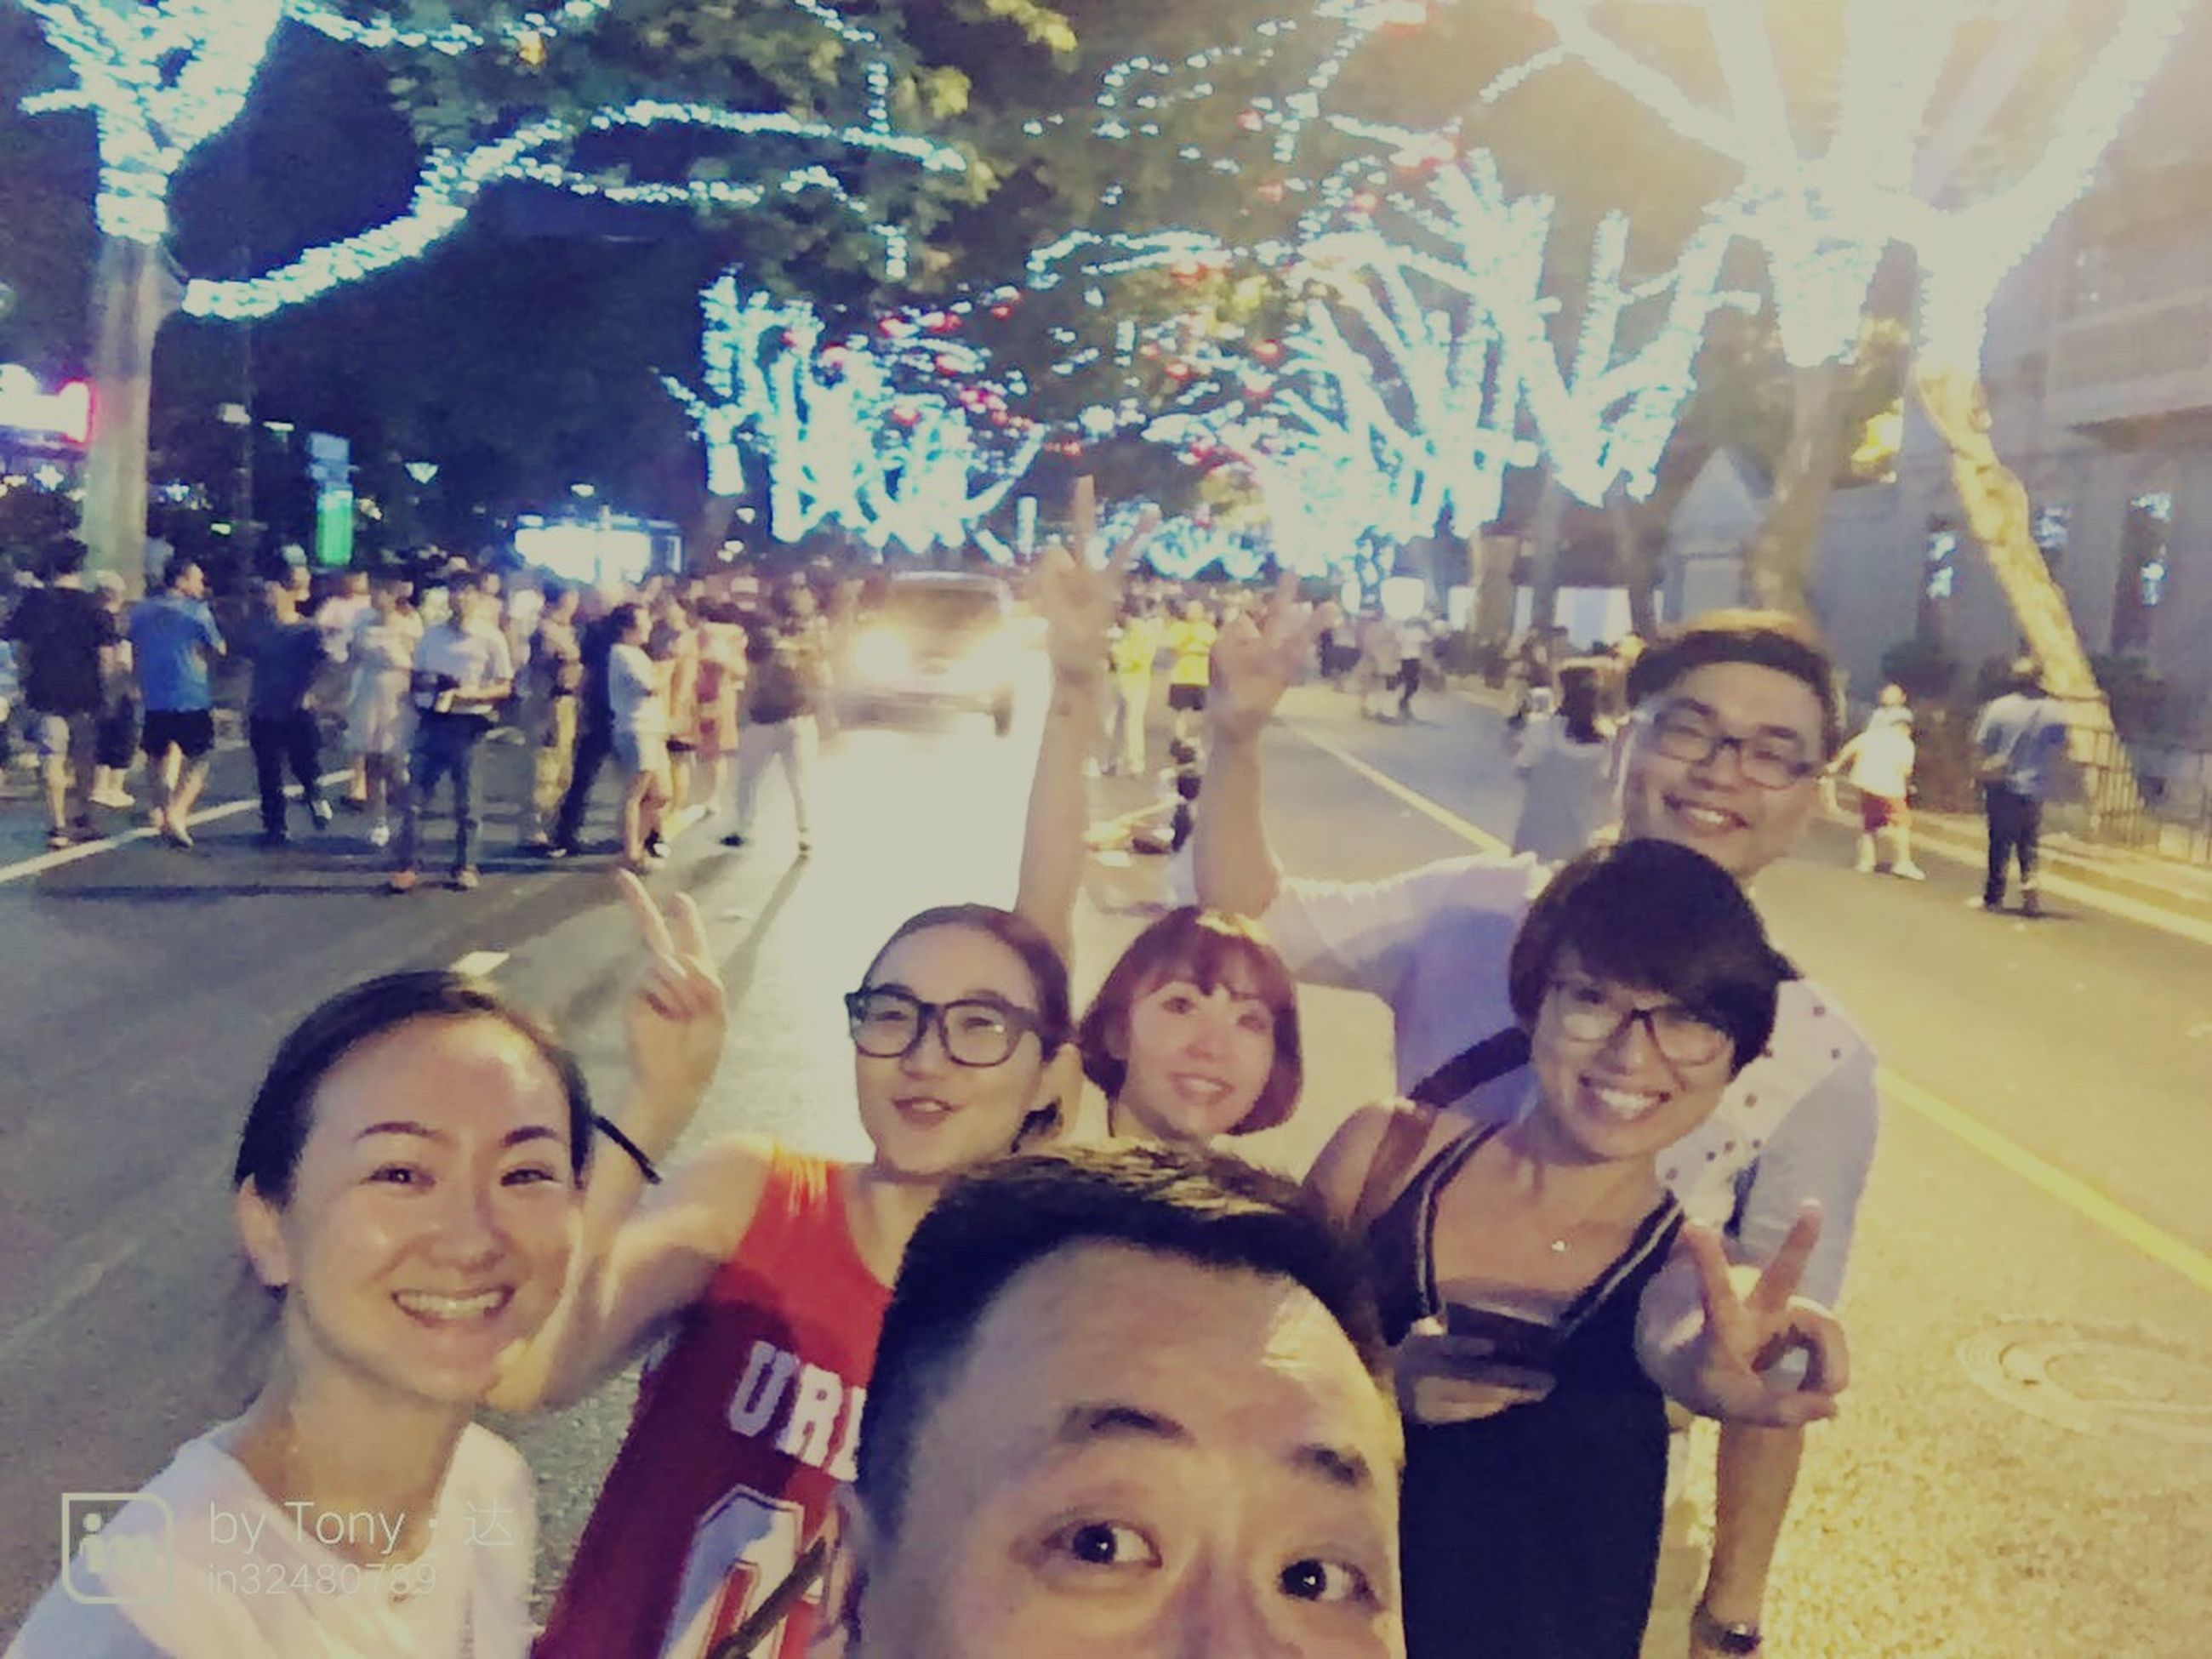 leisure activity, lifestyles, tree, togetherness, city, person, enjoyment, group of people, city life, vacations, day